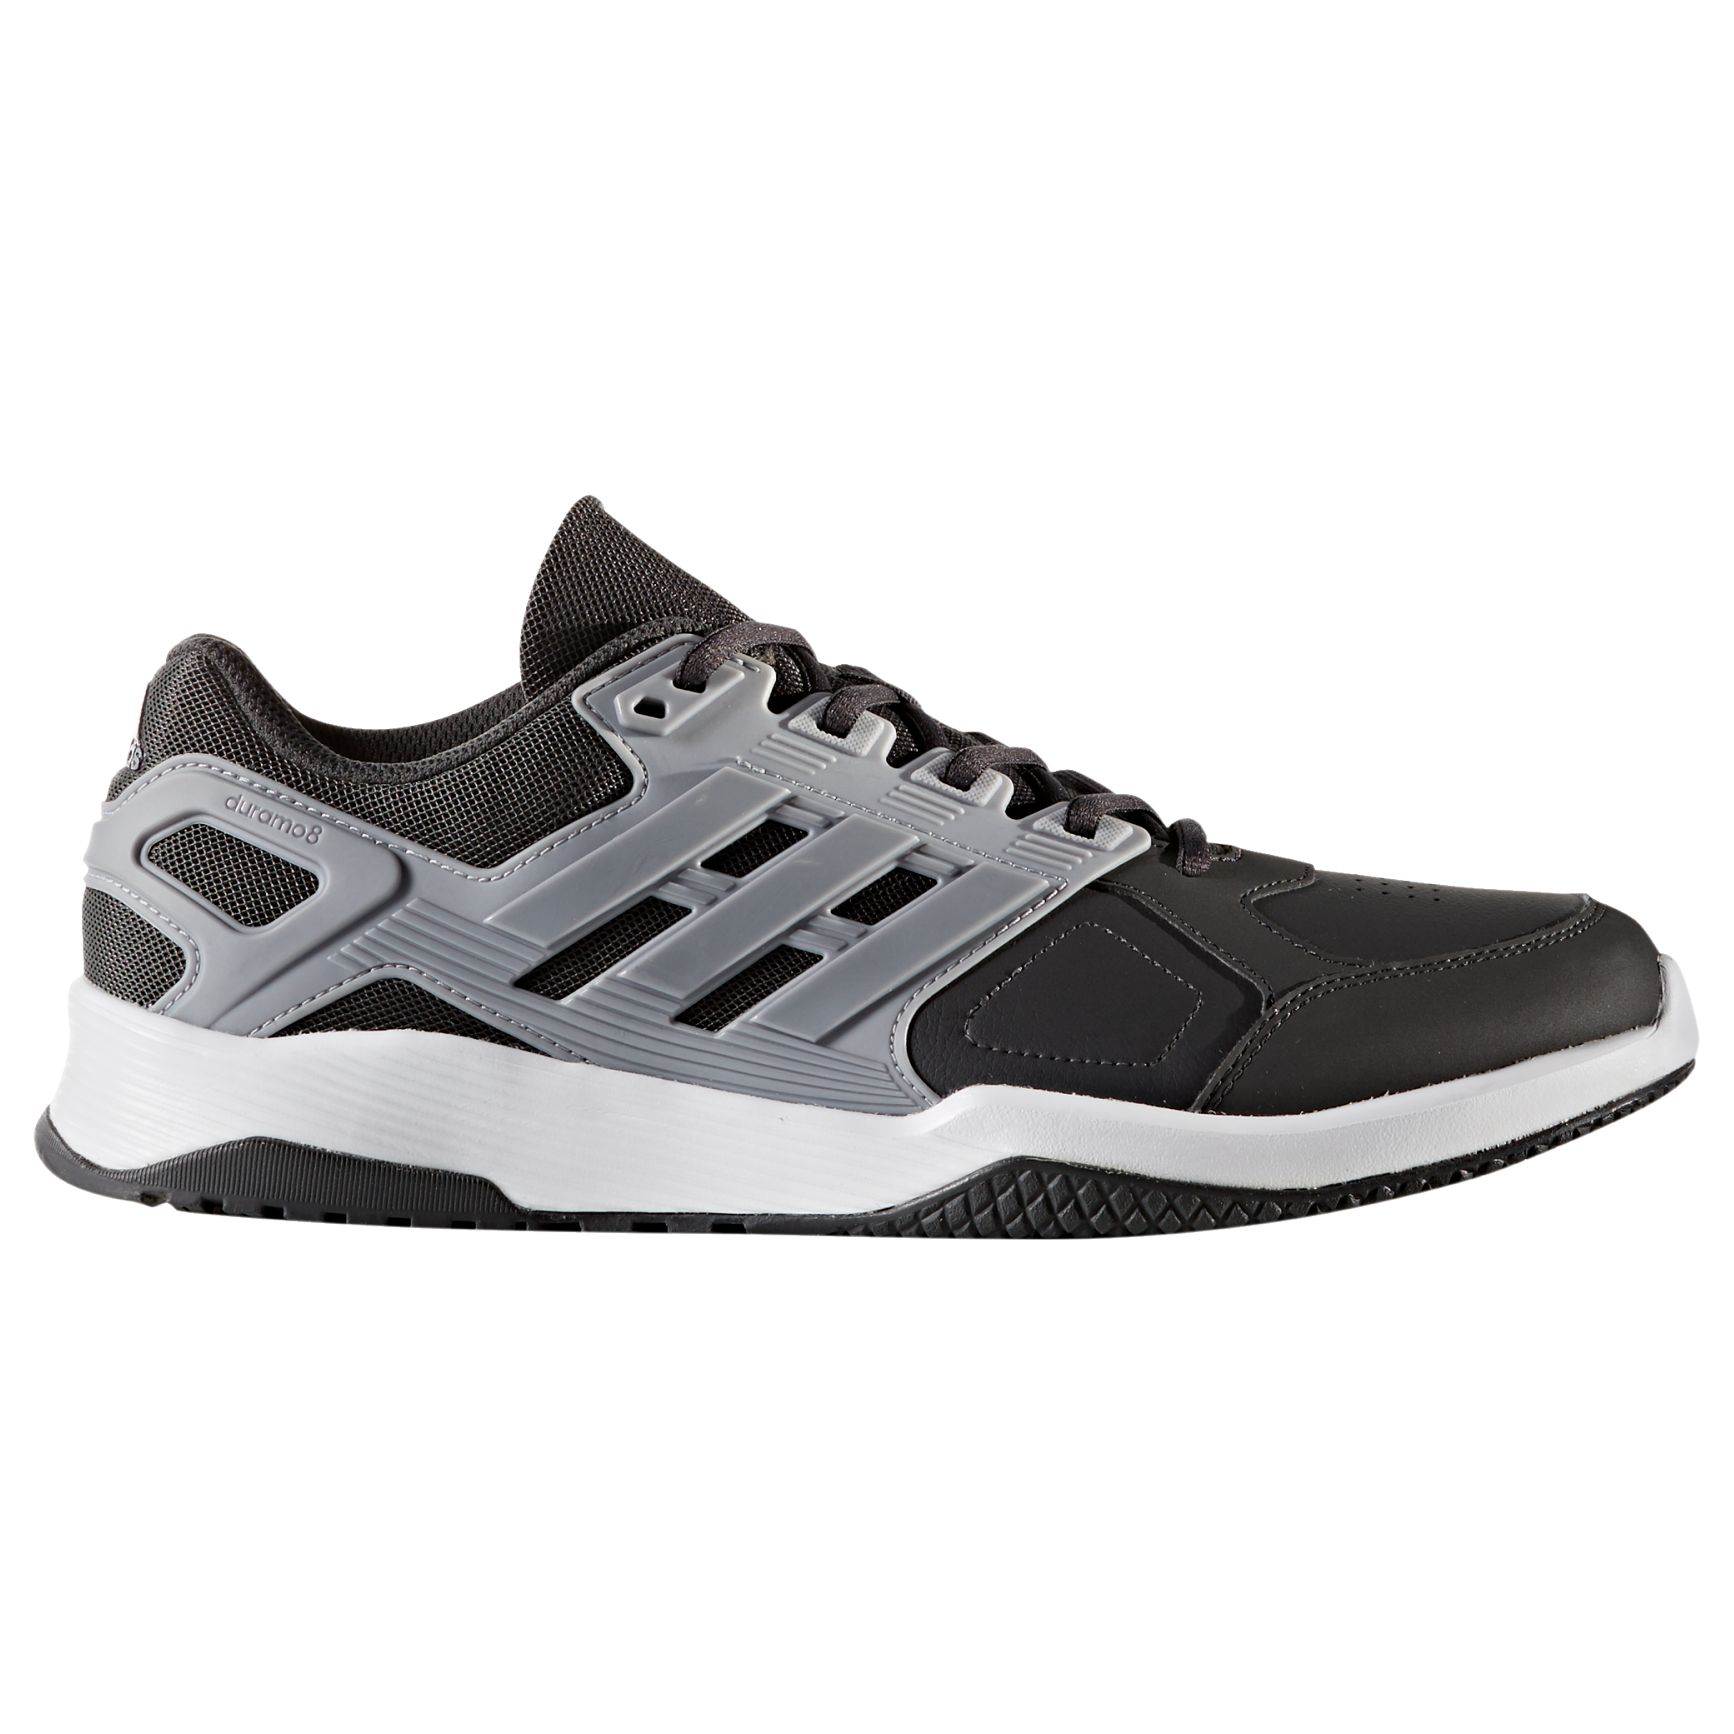 ... outlet online 2c8f1 7b195 adidas Duramo 8 Mens Training Shoes, Black at  John Lewis Pa ...